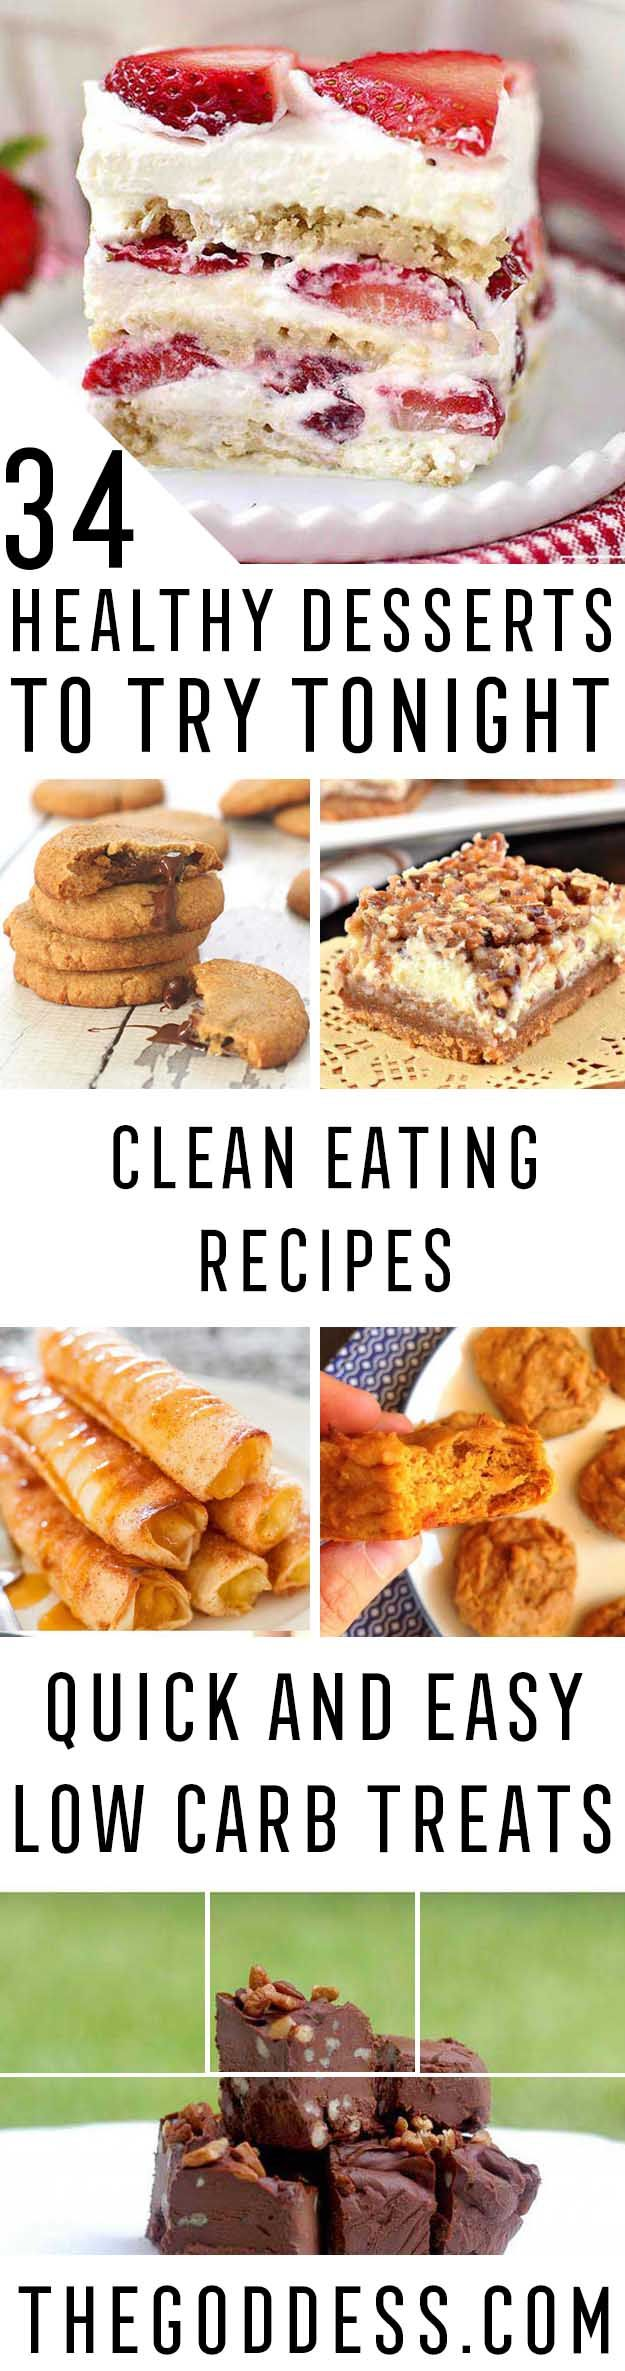 Healthy Desserts To Try Tonight - Easy And Yummy DIY Health Desserts Under 100 Calories To Try Tonight. No Bake Desserts From Scratch You Can Make In A Mug With No Sugar And Easy To Eat Clean. Recipes For Chocolate Desserts For One And Weight Watchers Ide http://healthyquickly.com